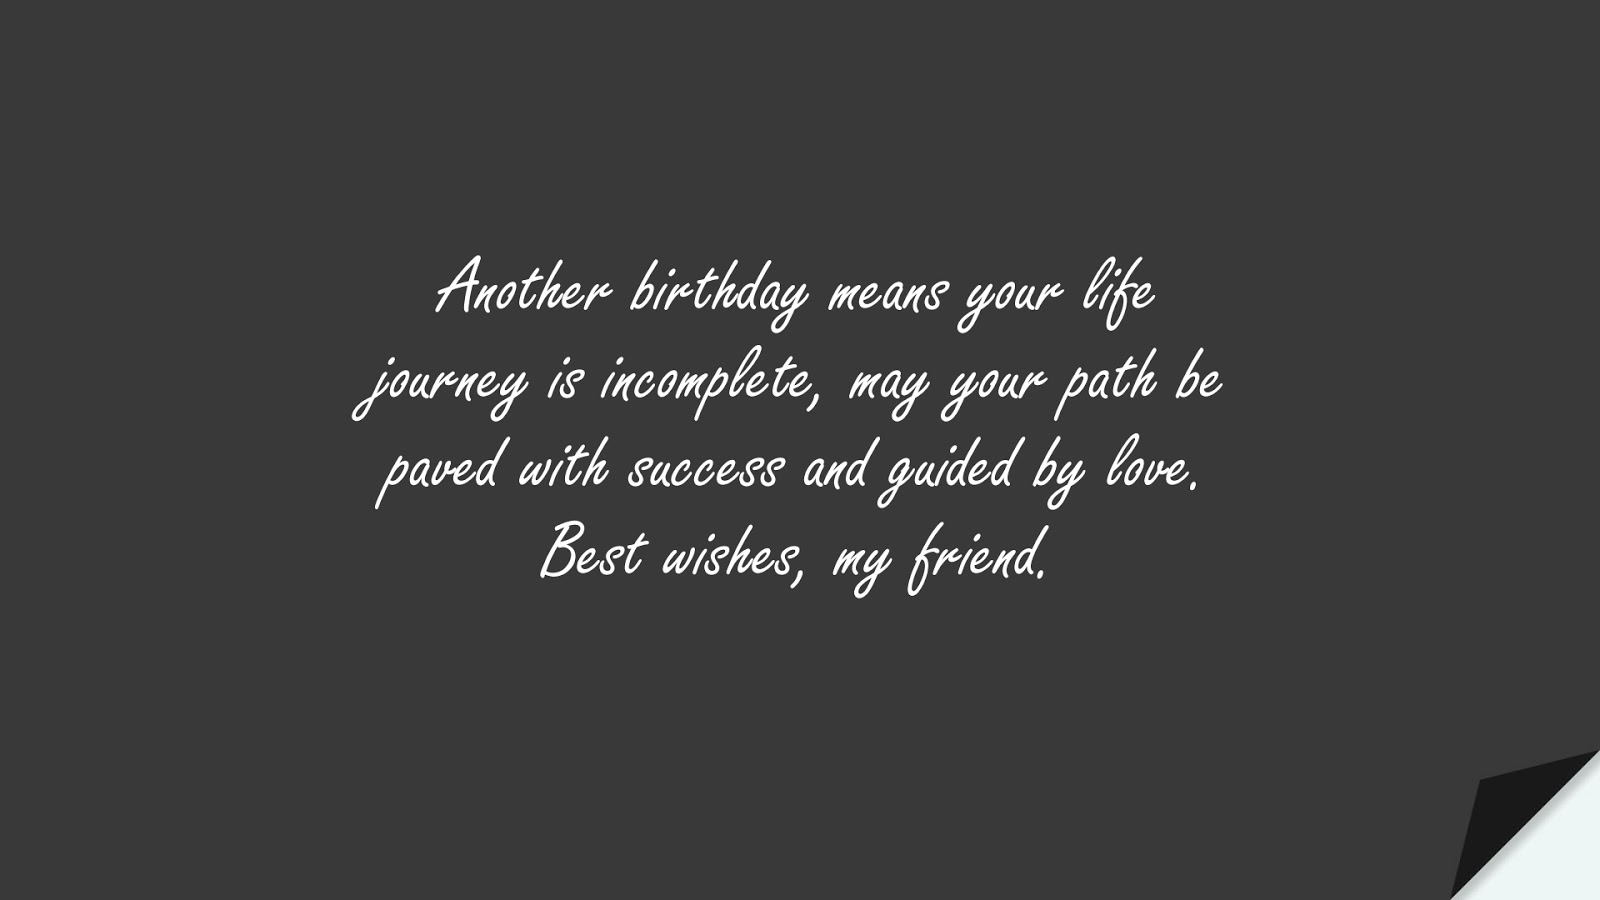 Another birthday means your life journey is incomplete, may your path be paved with success and guided by love. Best wishes, my friend.FALSE